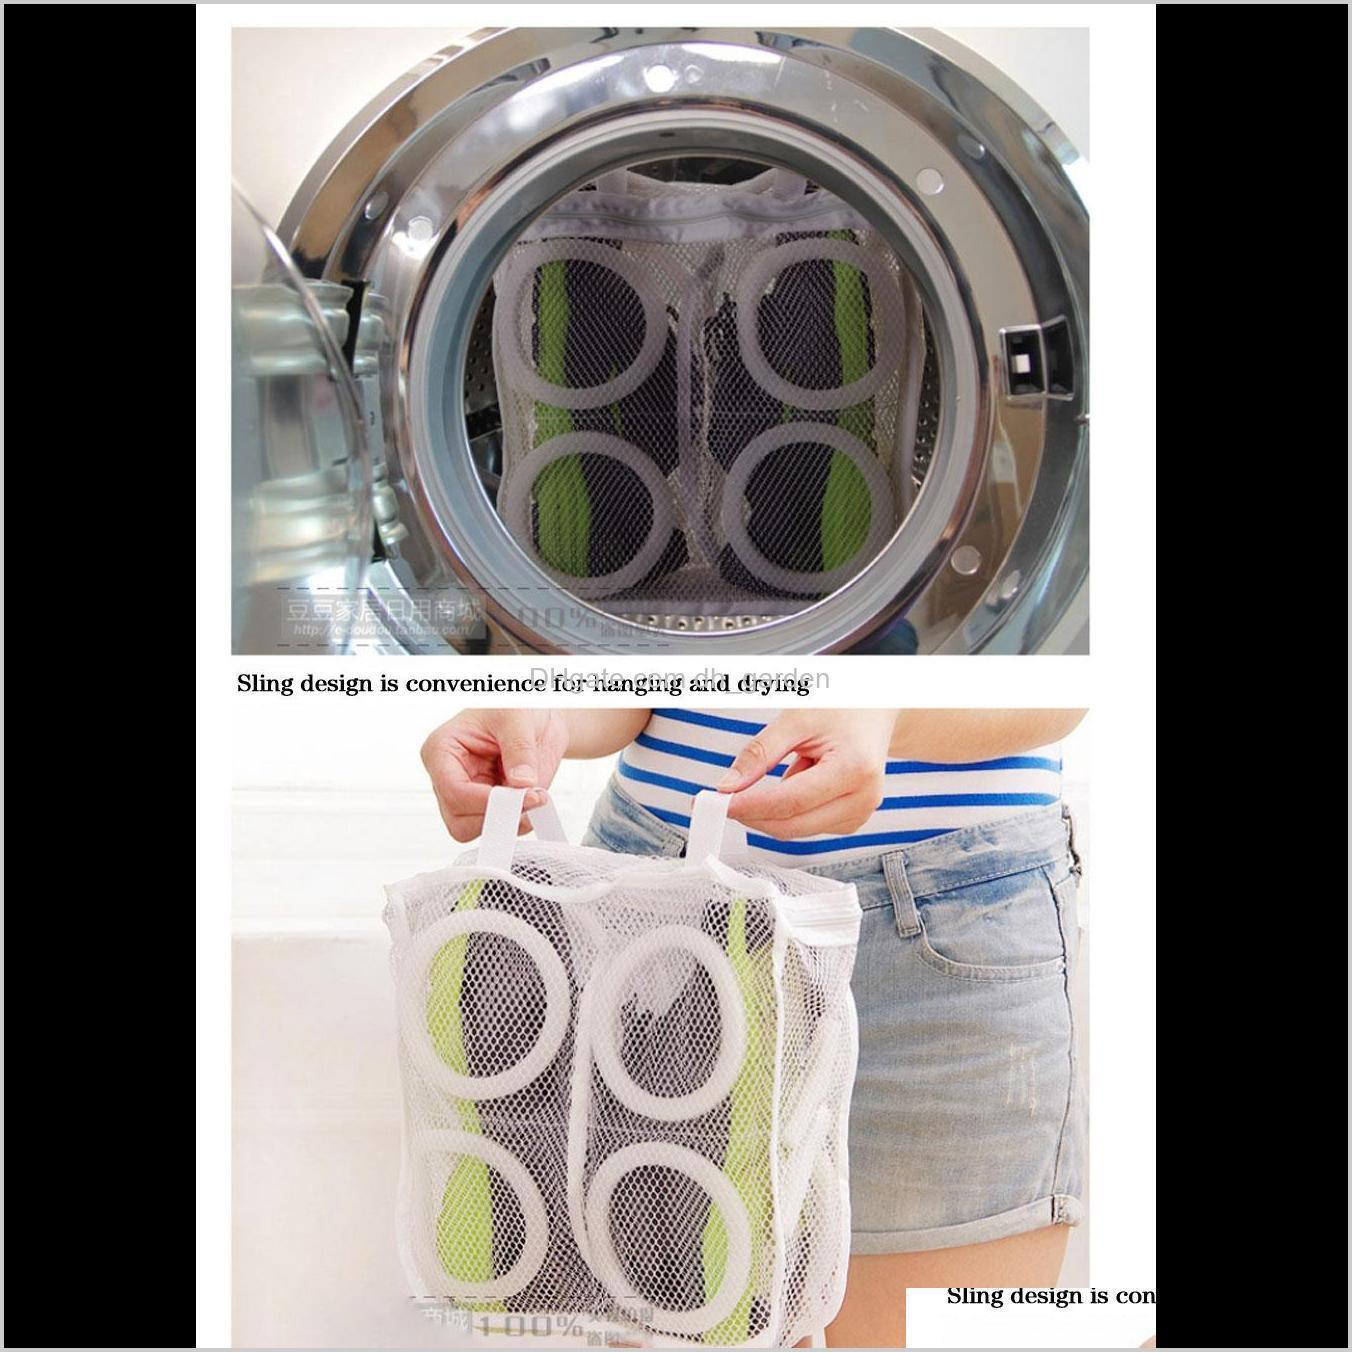 Clothing Racks Housekeeping Organization Home & Garden Drop Delivery 2021 High Quality Fashion Storage Mesh Laundry Shoes Dry Shoe Organizer